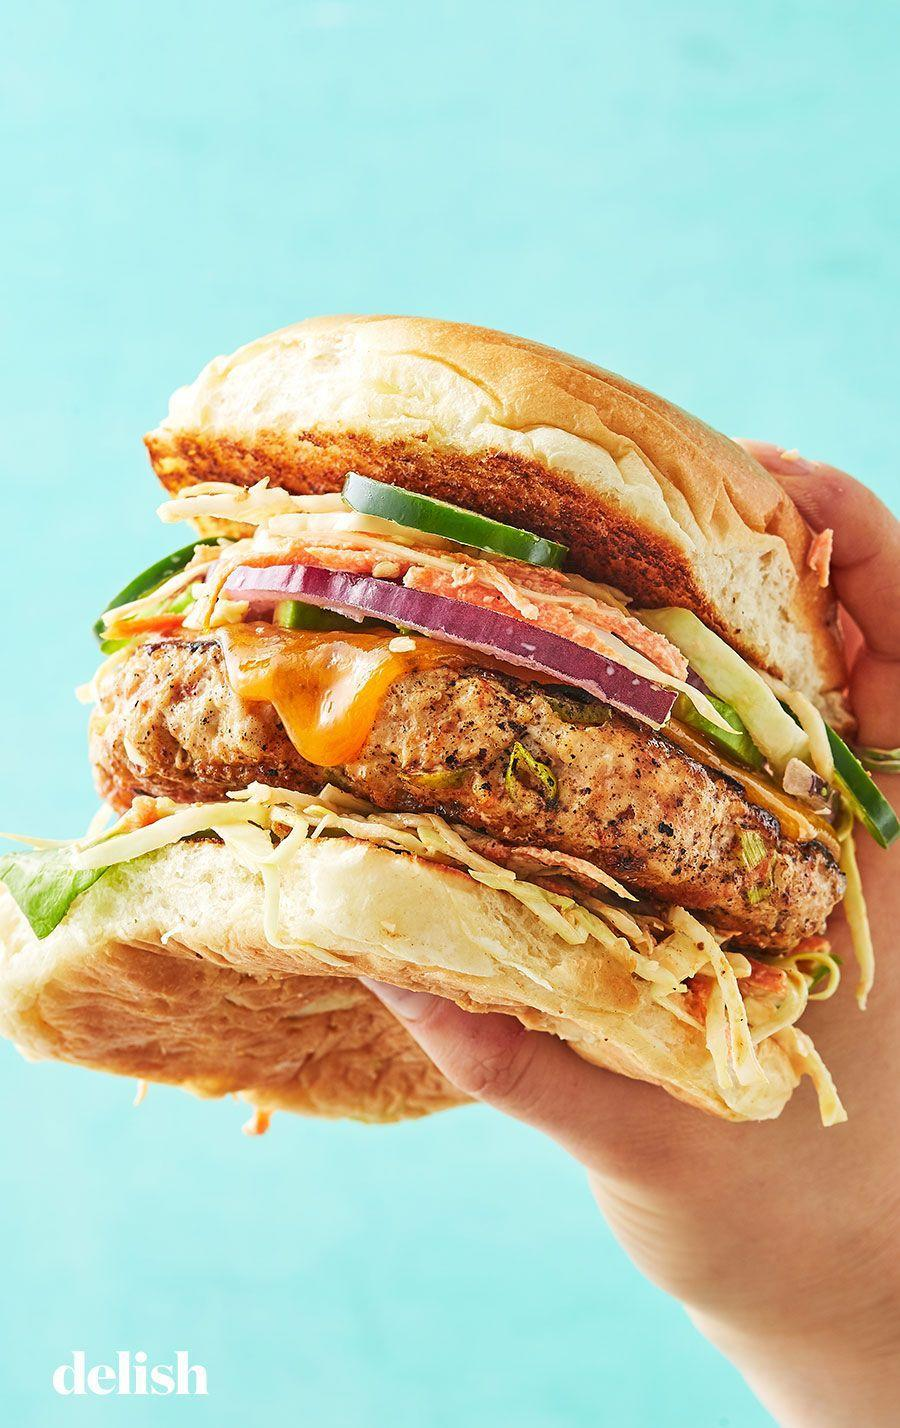 """<p>Toss some chicken burgers on the grill while you're at it!</p><p>Get the recipe from <a href=""""https://www.delish.com/cooking/recipe-ideas/recipes/a13513/chicken-burgers-recipe-mslo1010/"""" rel=""""nofollow noopener"""" target=""""_blank"""" data-ylk=""""slk:Delish."""" class=""""link rapid-noclick-resp"""">Delish.</a> </p>"""